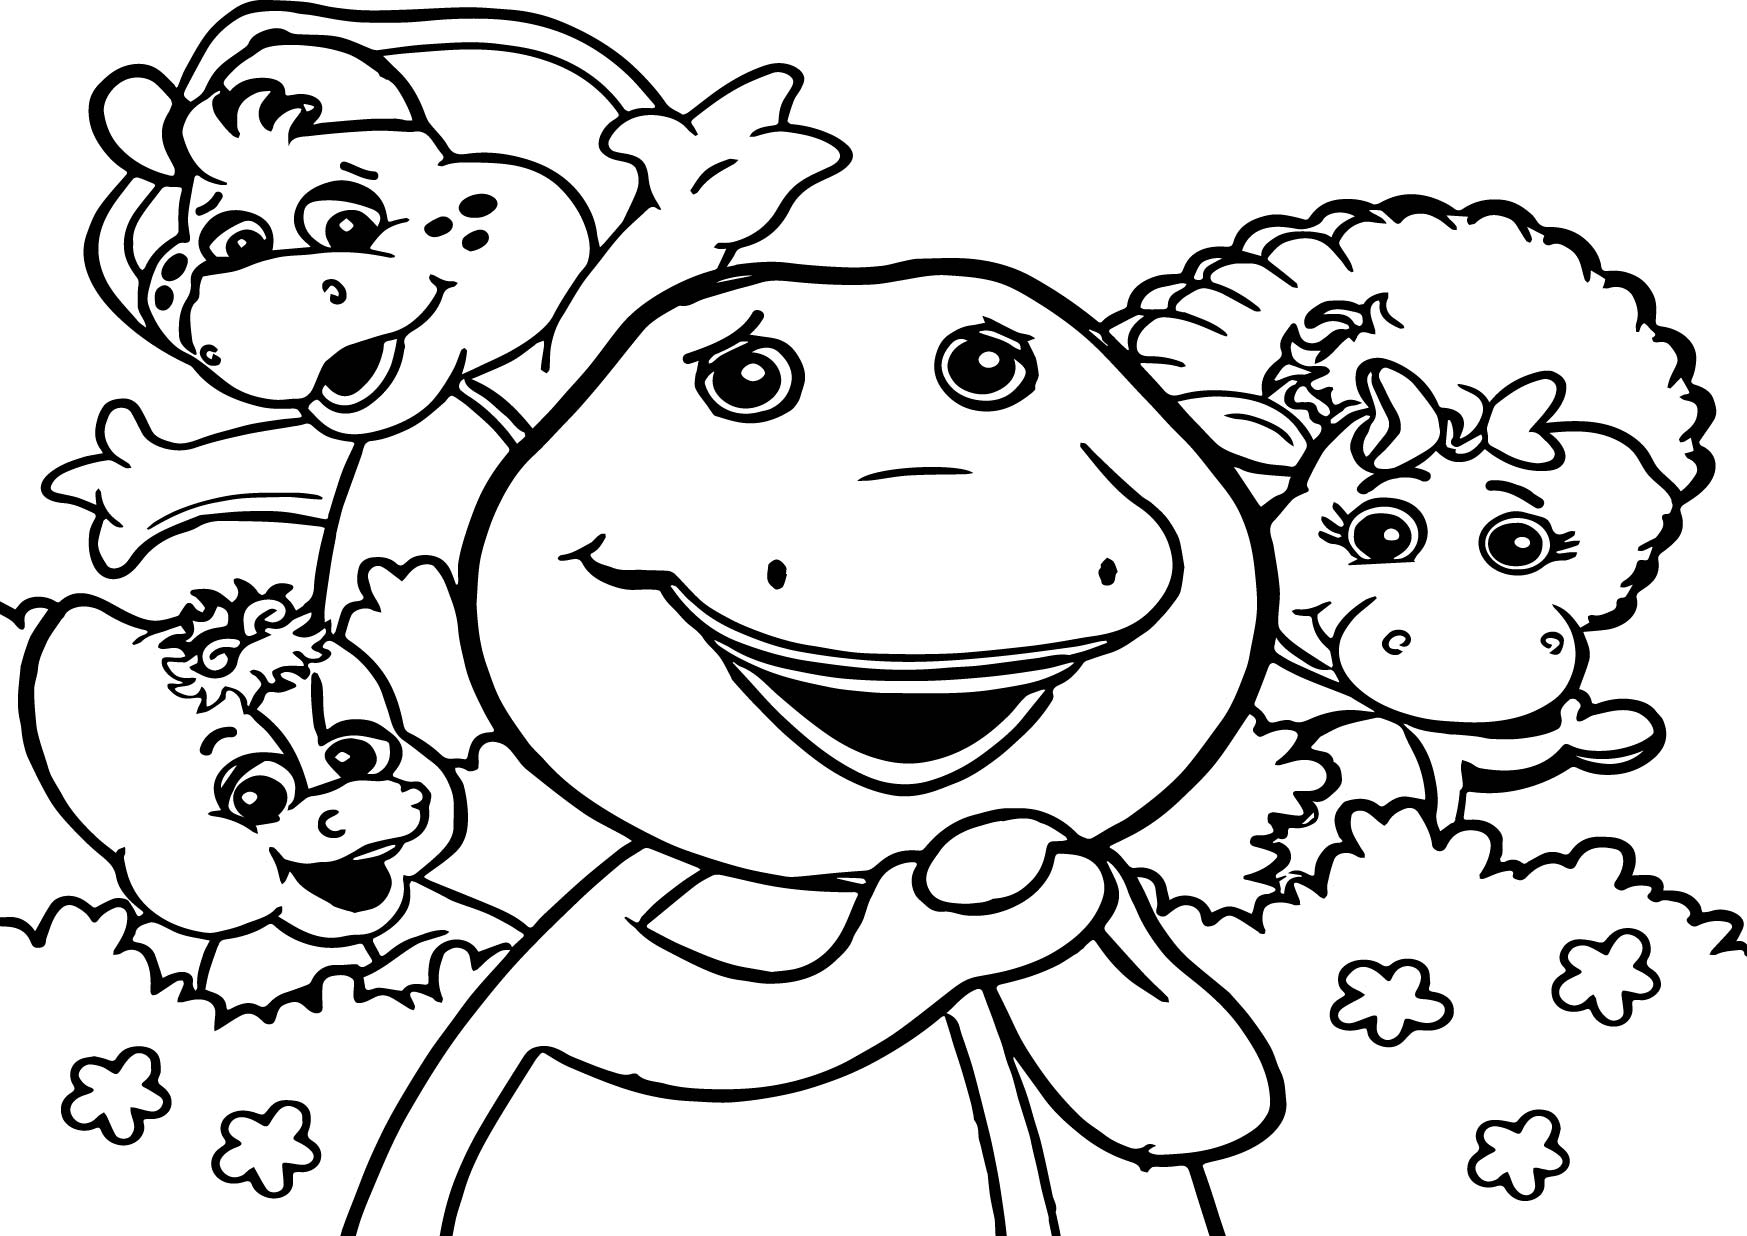 Barney Friends Coloring Page With Barney Color Pages Barney And Friends Coloring Pages